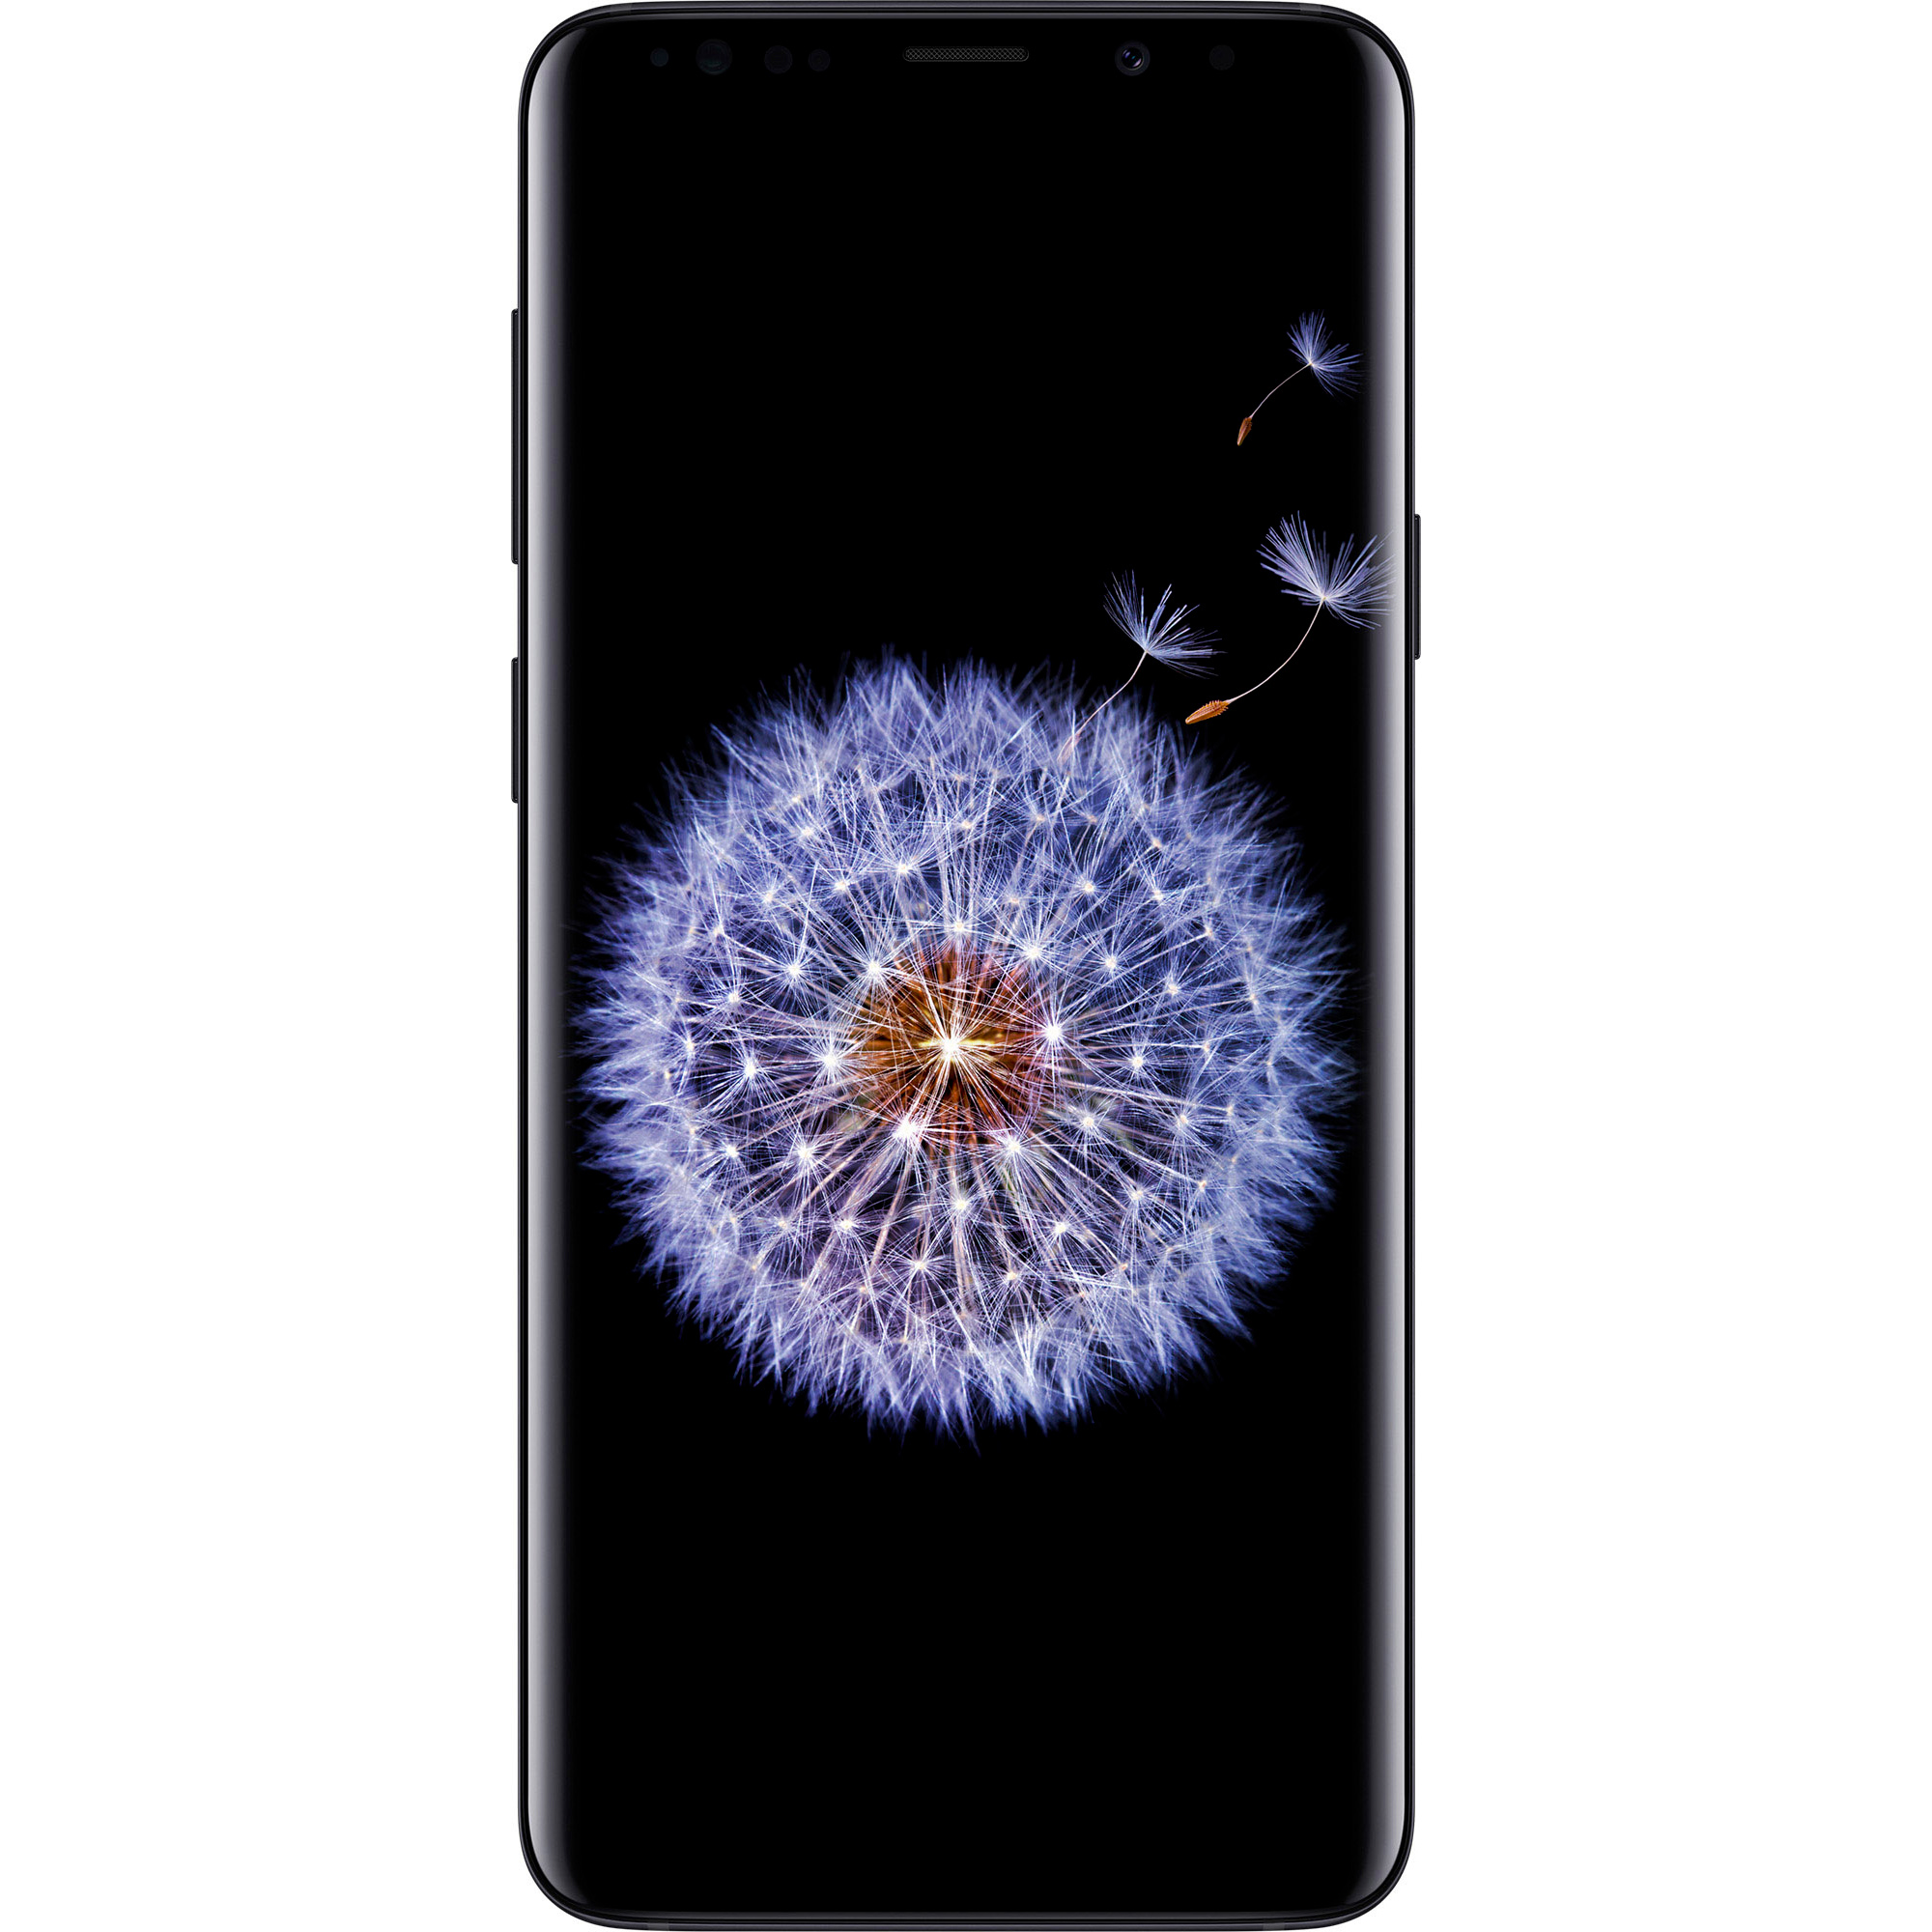 64GB SAMSUNG GALAXY S9 PLUS